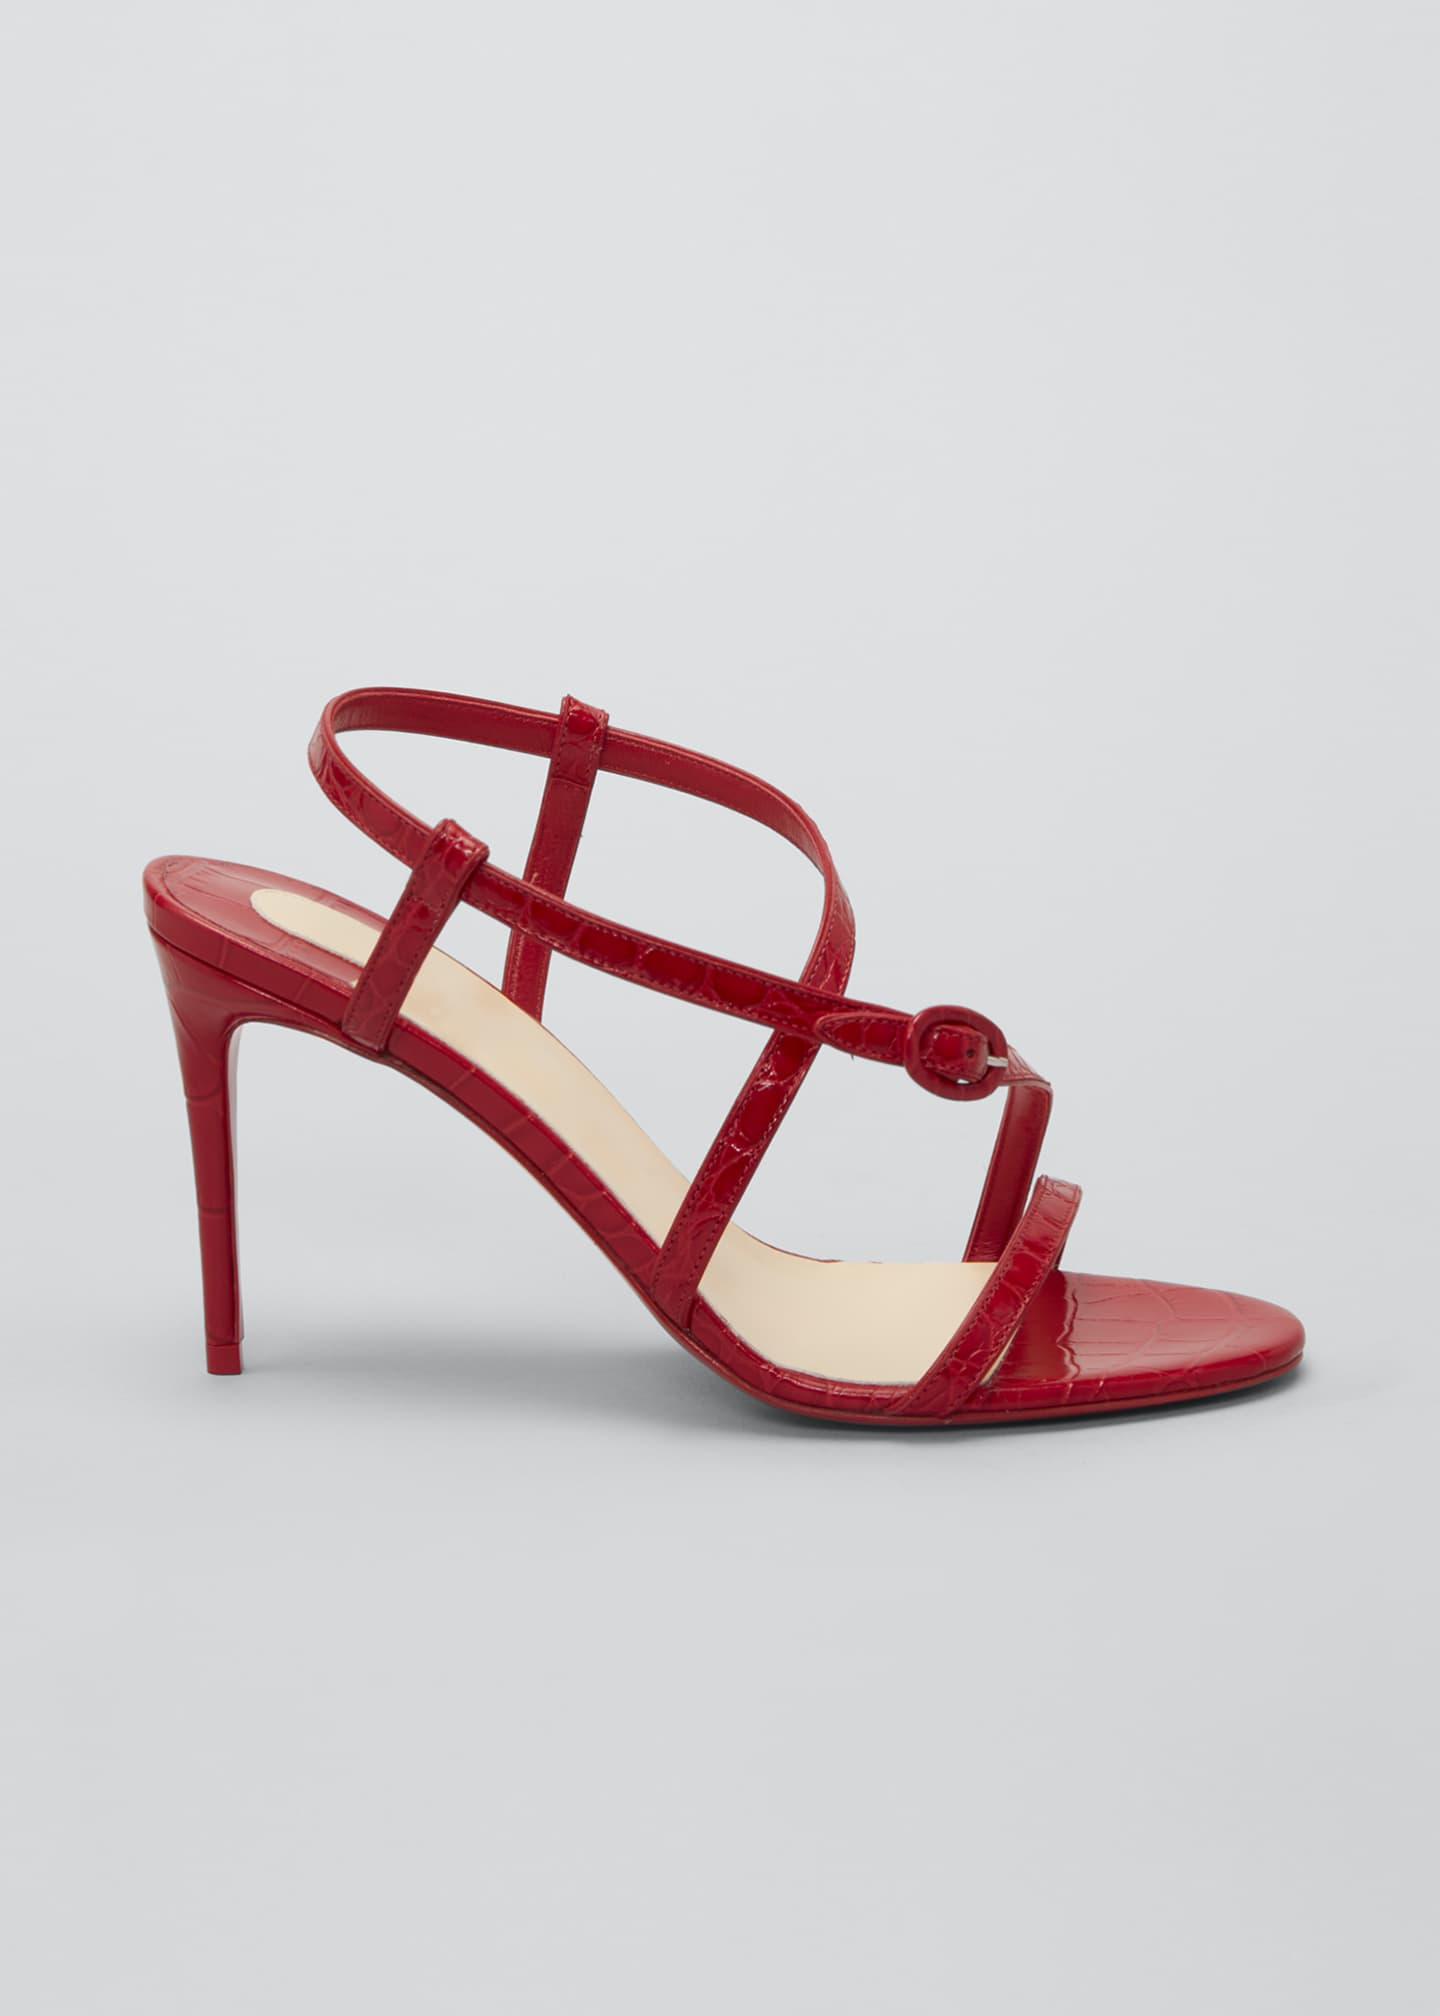 Image 1 of 2: Selima Mock-Croc Stiletto Red Sole Sandals